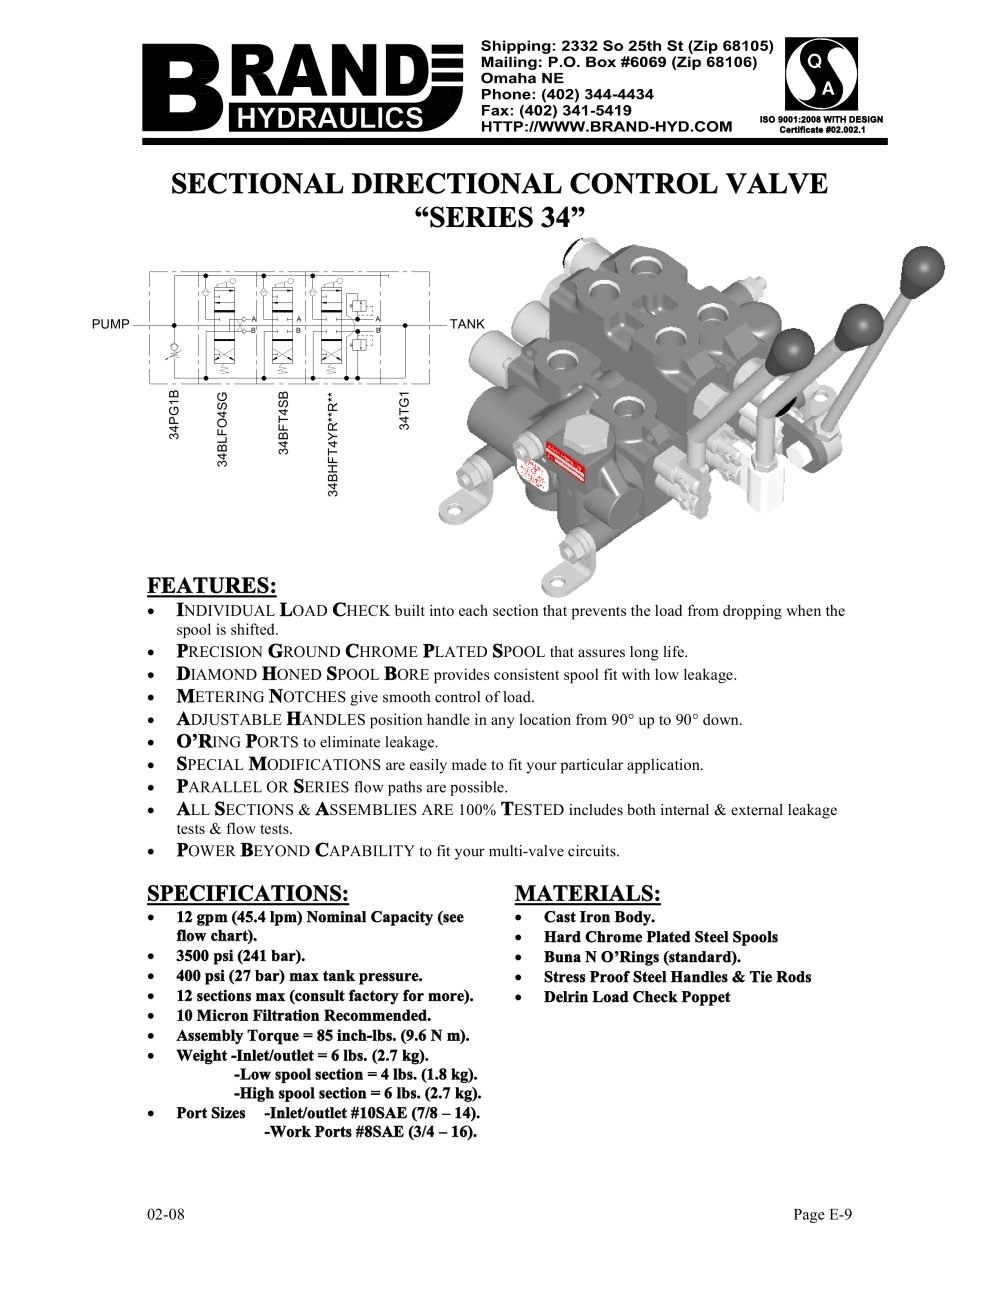 Sectional directional control valve series 34 brand hydraulics sectional directional control valve series 34 1 10 pages nvjuhfo Choice Image